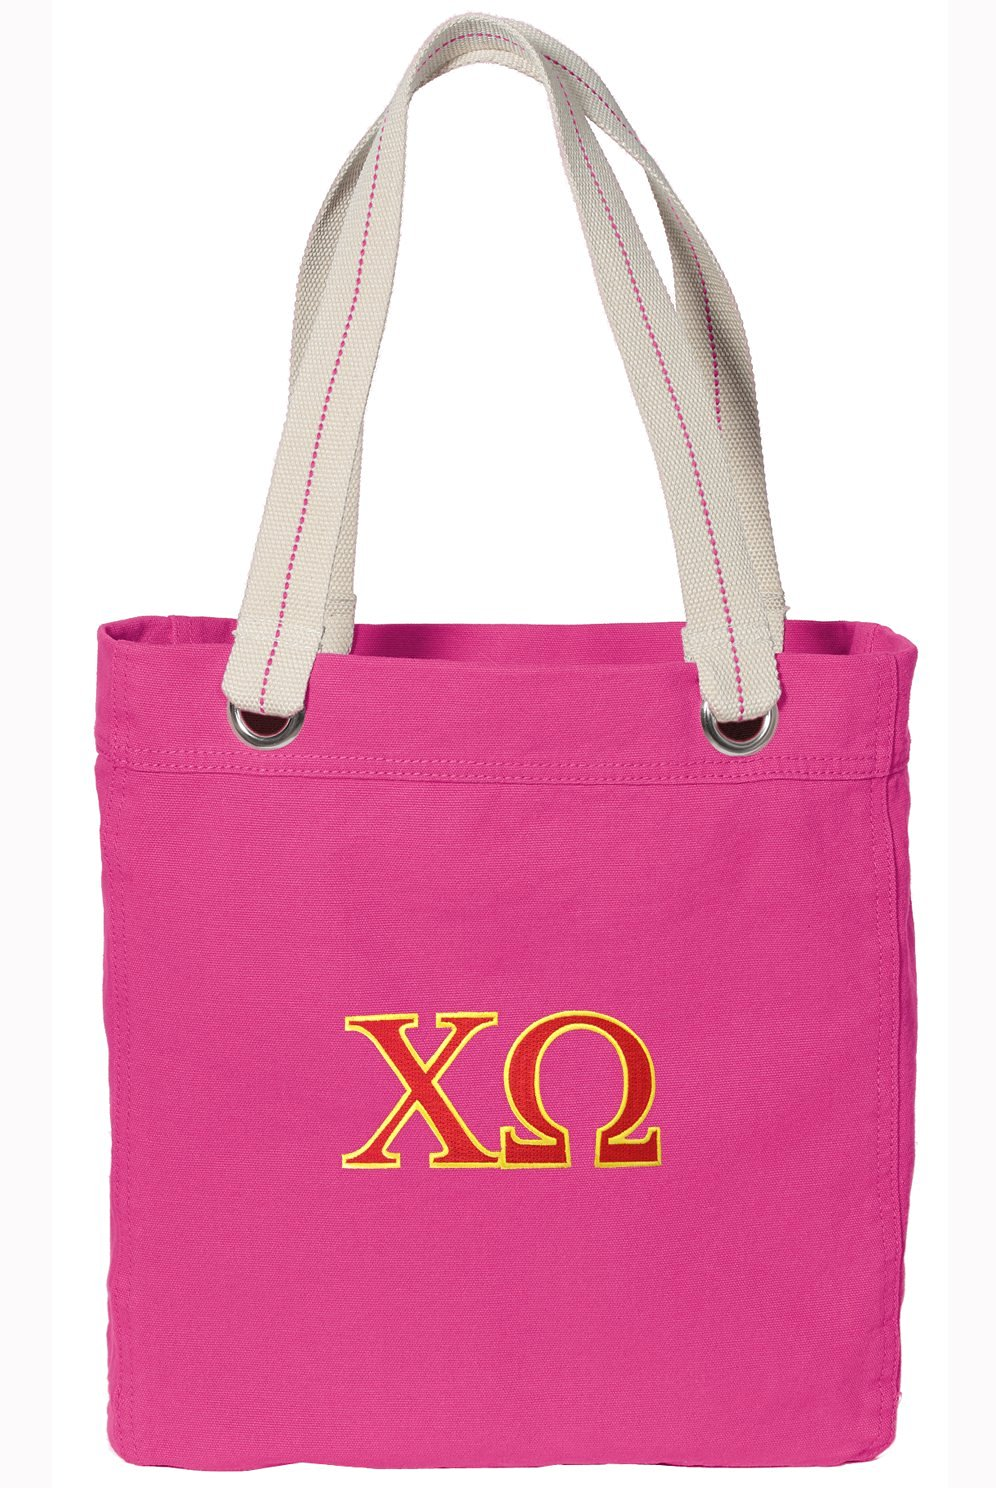 Chi Omega Tote Bag RICH Dye Washed Pink COTTON CANVAS